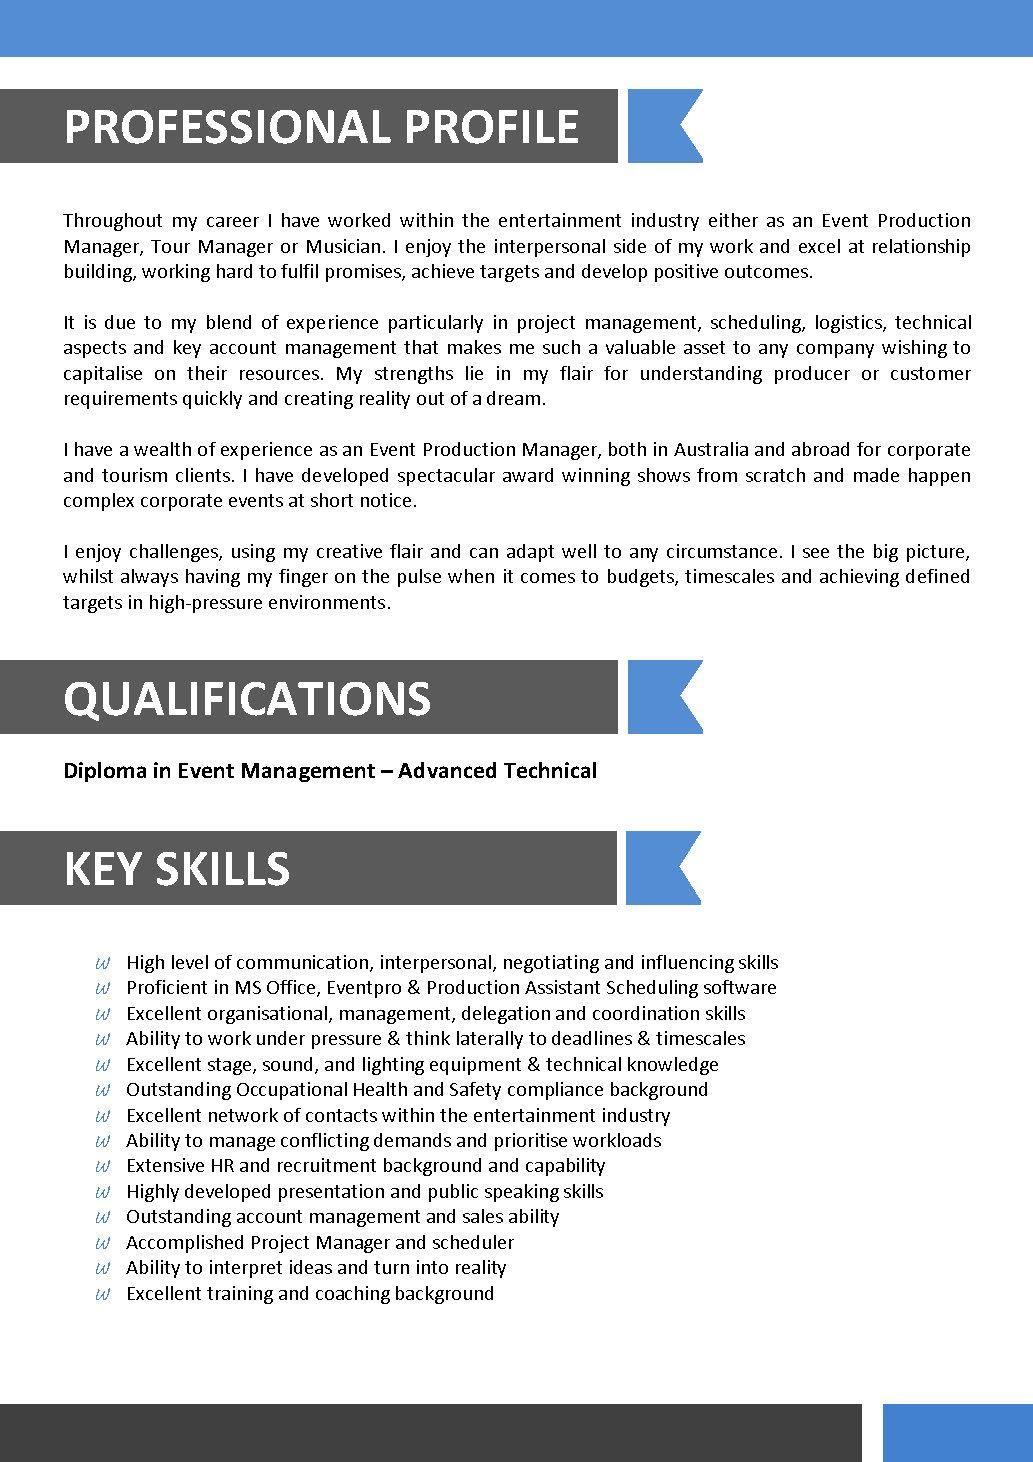 Sample Resume For Entertainment Industry Best Resume Template Sample Resume Templates Resume Template Free